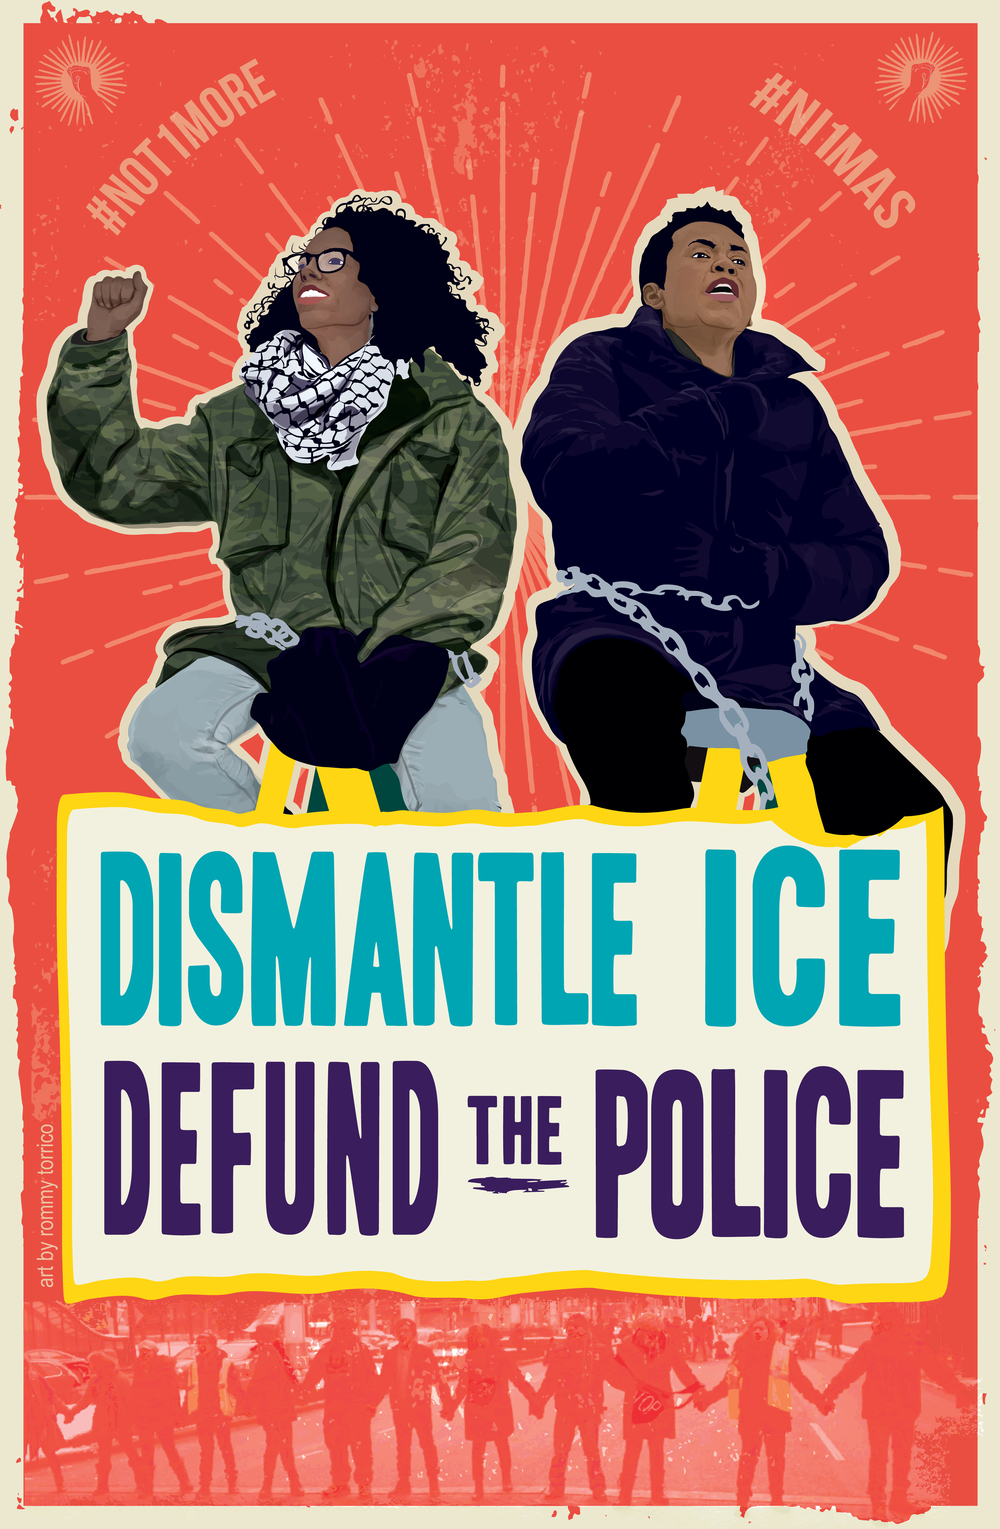 Dismantle Ice, Defund the Police